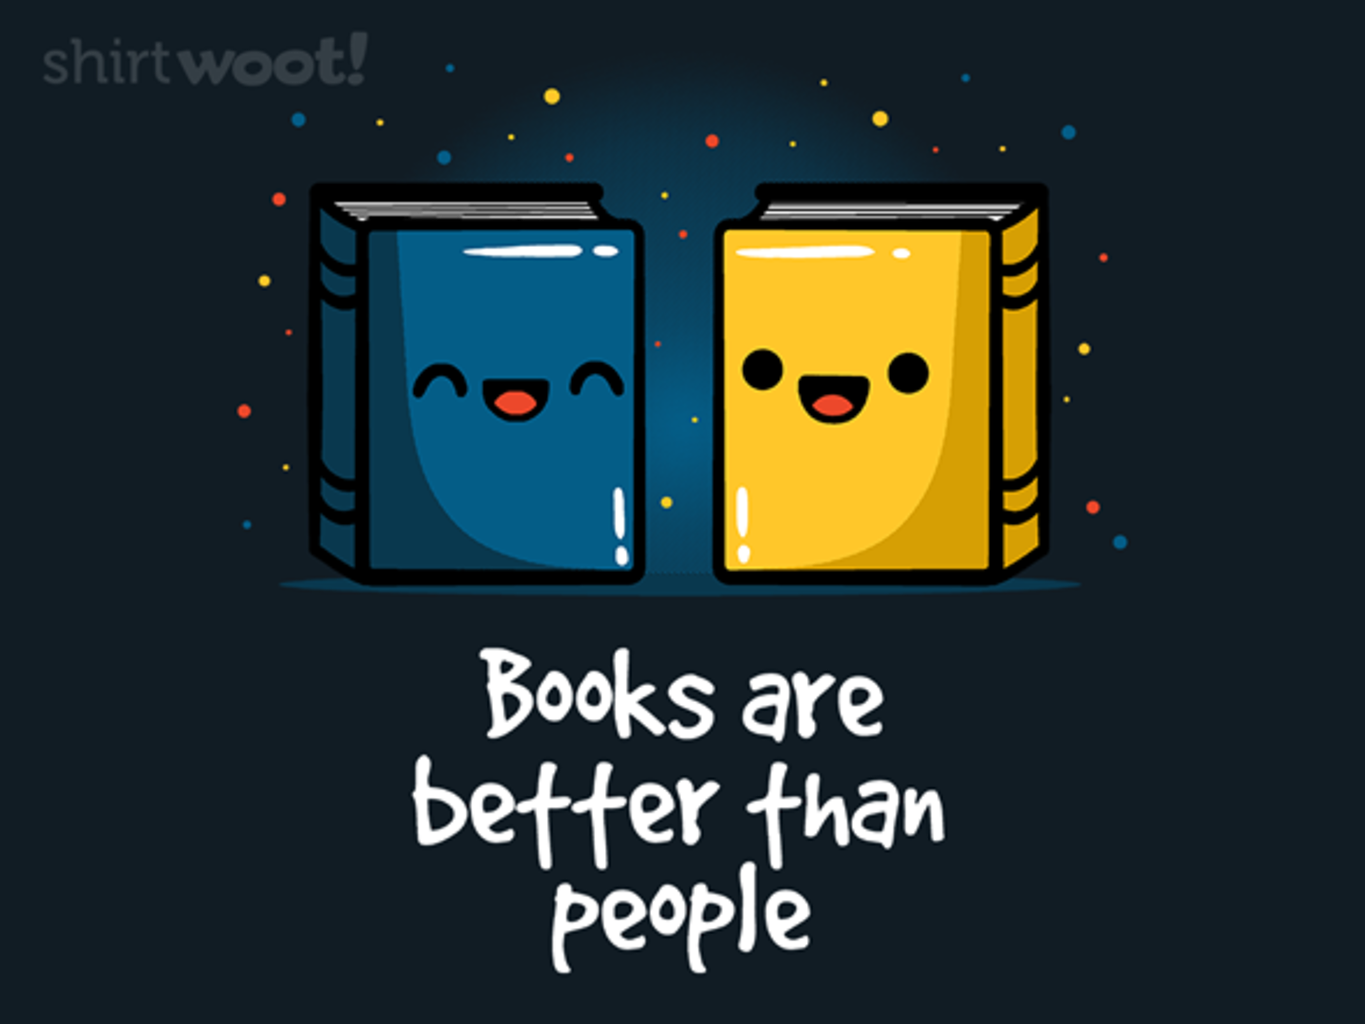 Woot!: The Book was Better